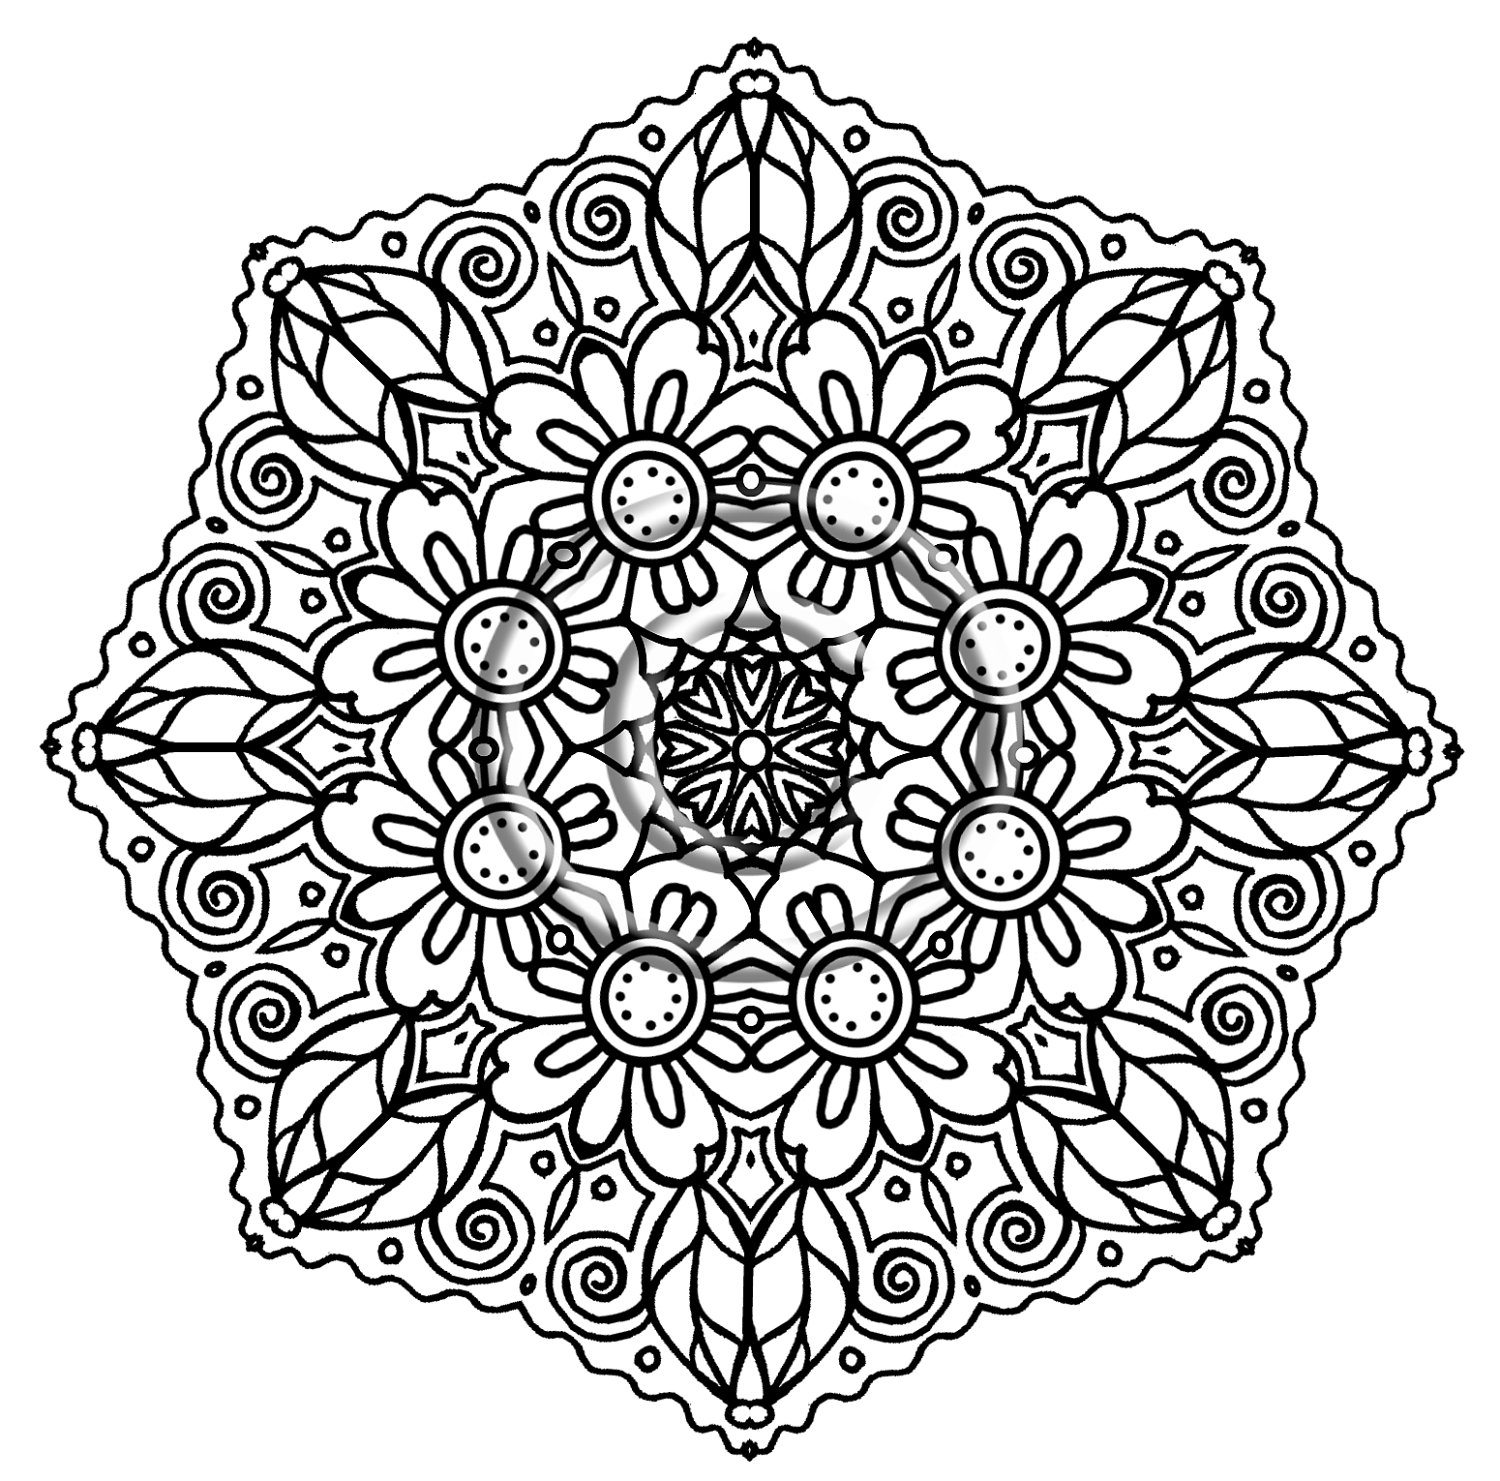 7 Images of Adult Intricate Coloring Pages Printable